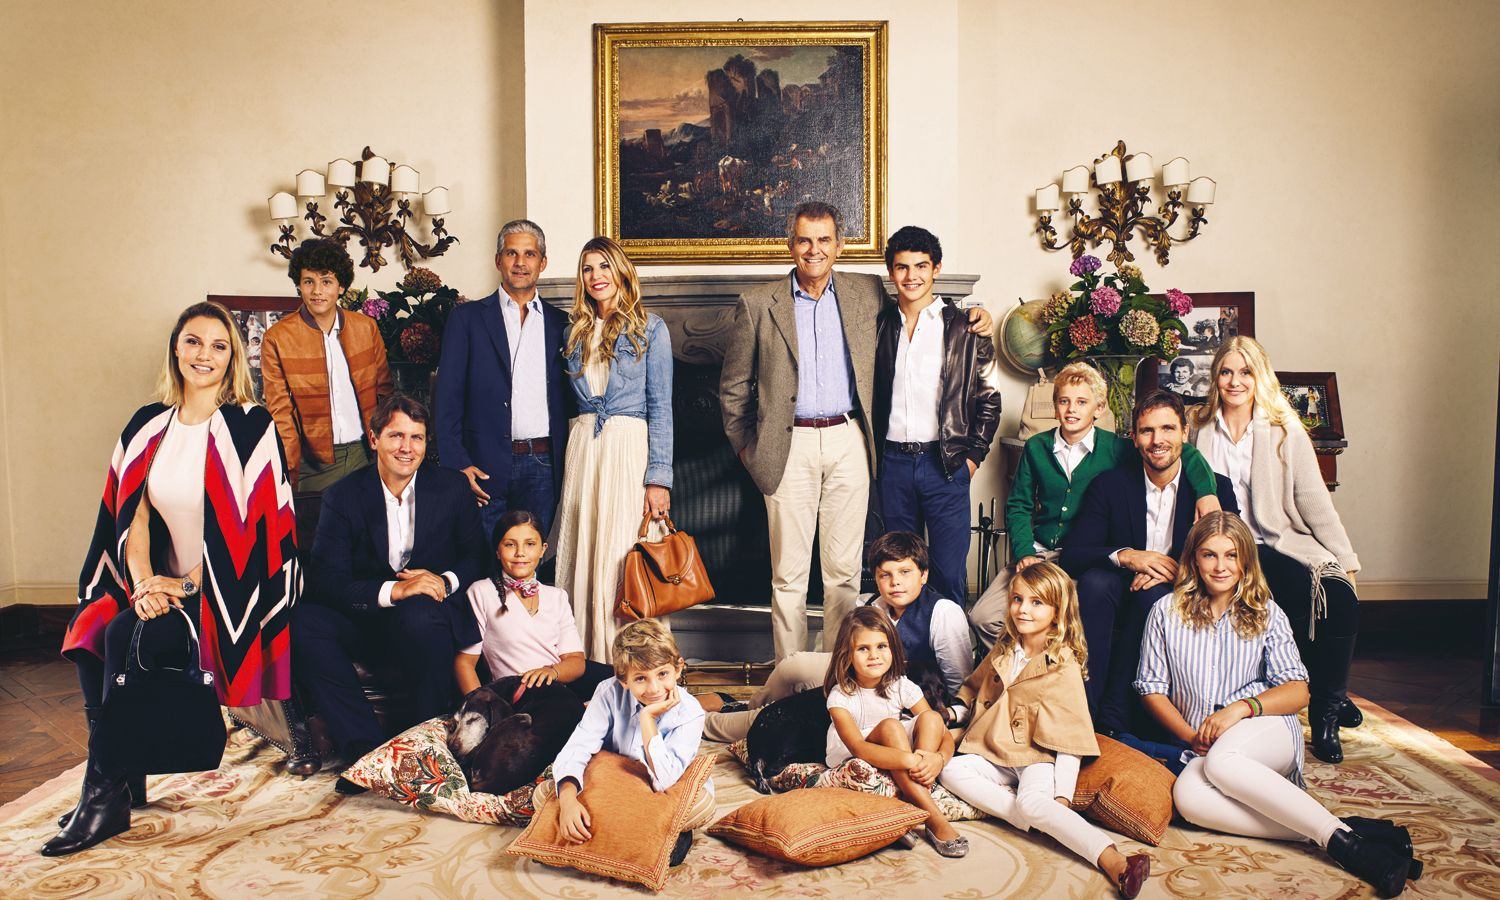 Inside the luxurious Tuscan home of the Ferragamo family